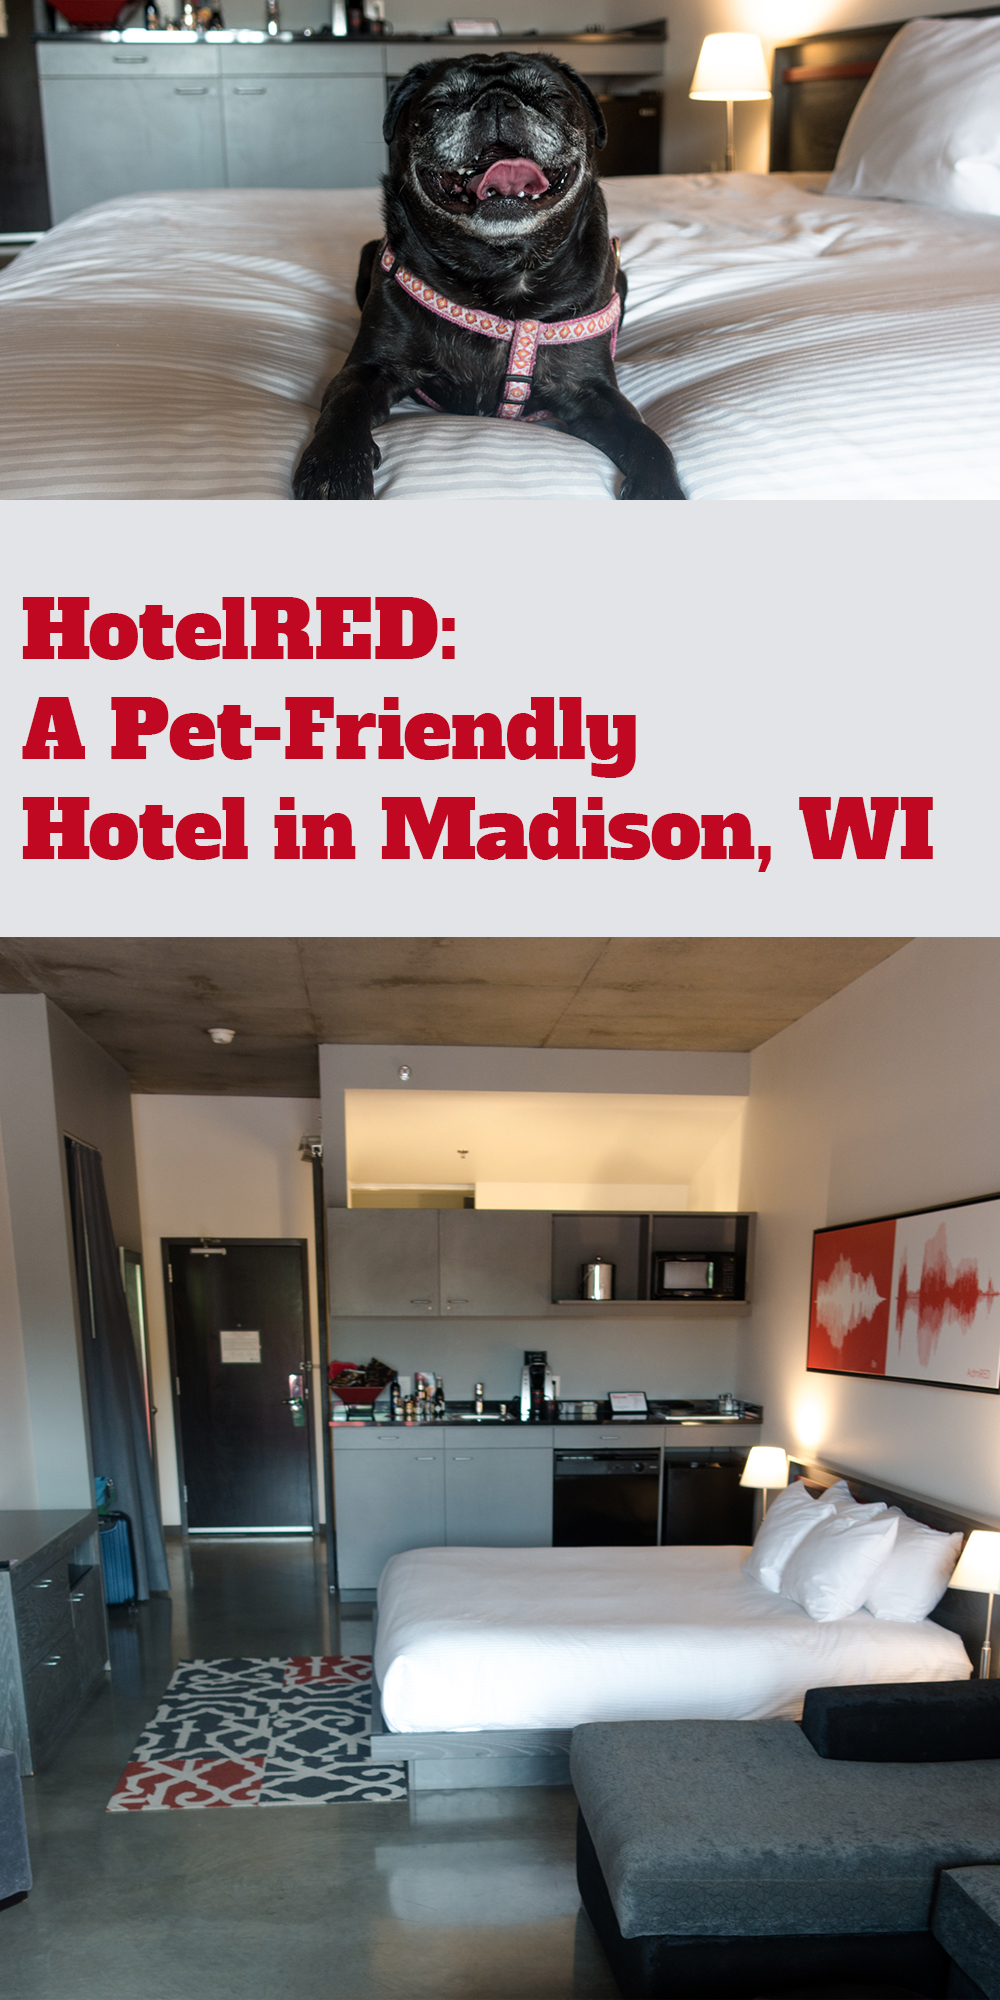 HotelRed: Pet-Friendly Hotel in Madison, WI is the perfect place to stay during your next trip to Madison, Wisconsin. This modern college town boutique hotel is the perfect place to stay! #Madison #Wisconsin #Midwest #petfriendly #hotel #travel #weekendgetaway #dog #wanderlust #explore